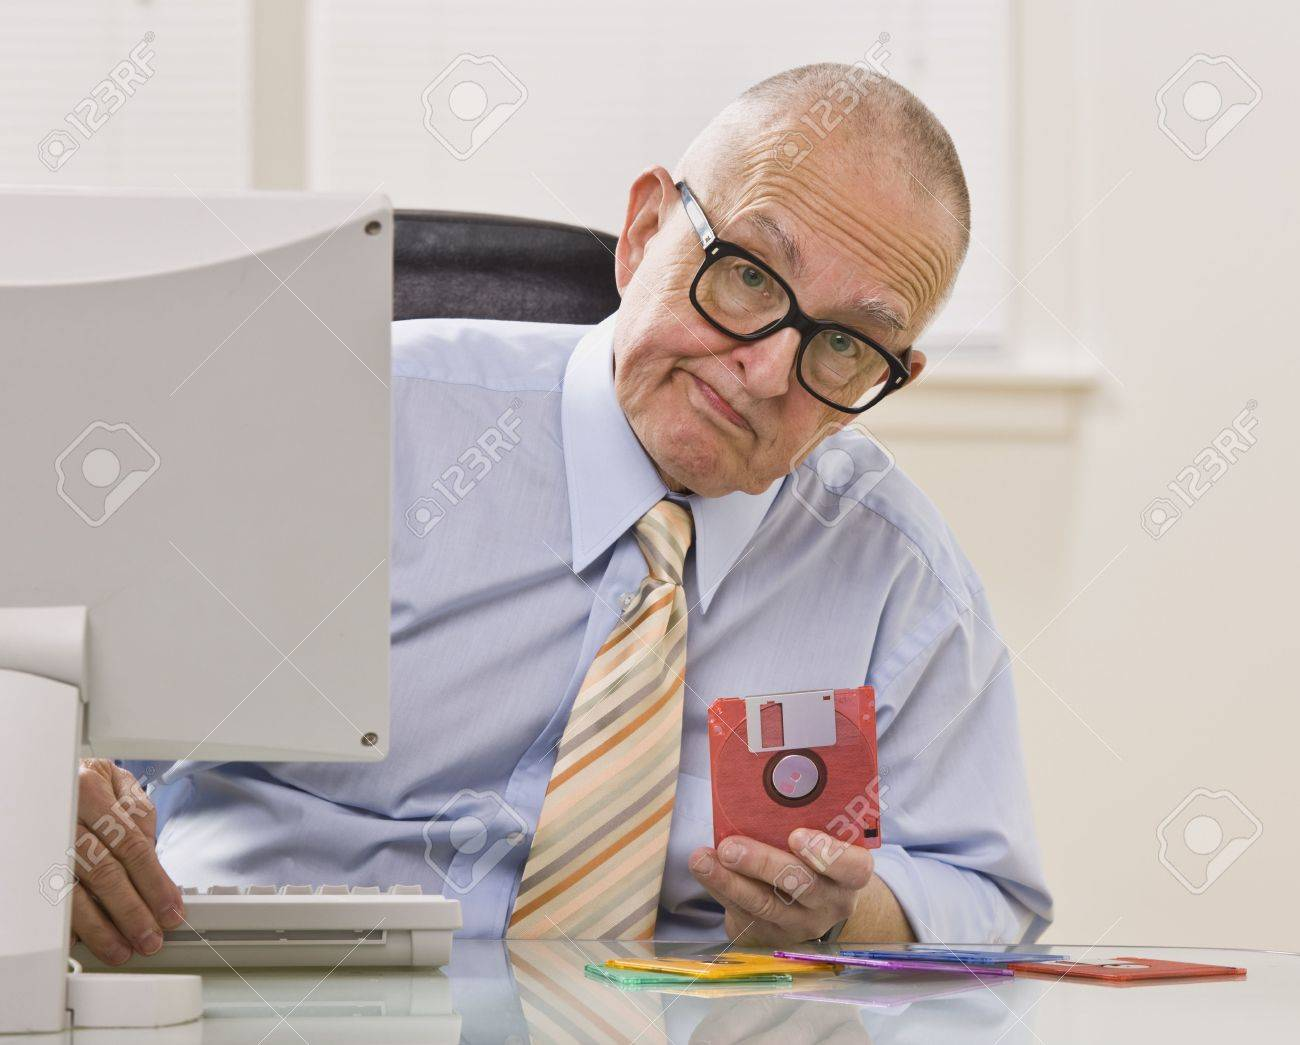 floppy office. an elderly businessman is seated in office holding a floppy disk he looking